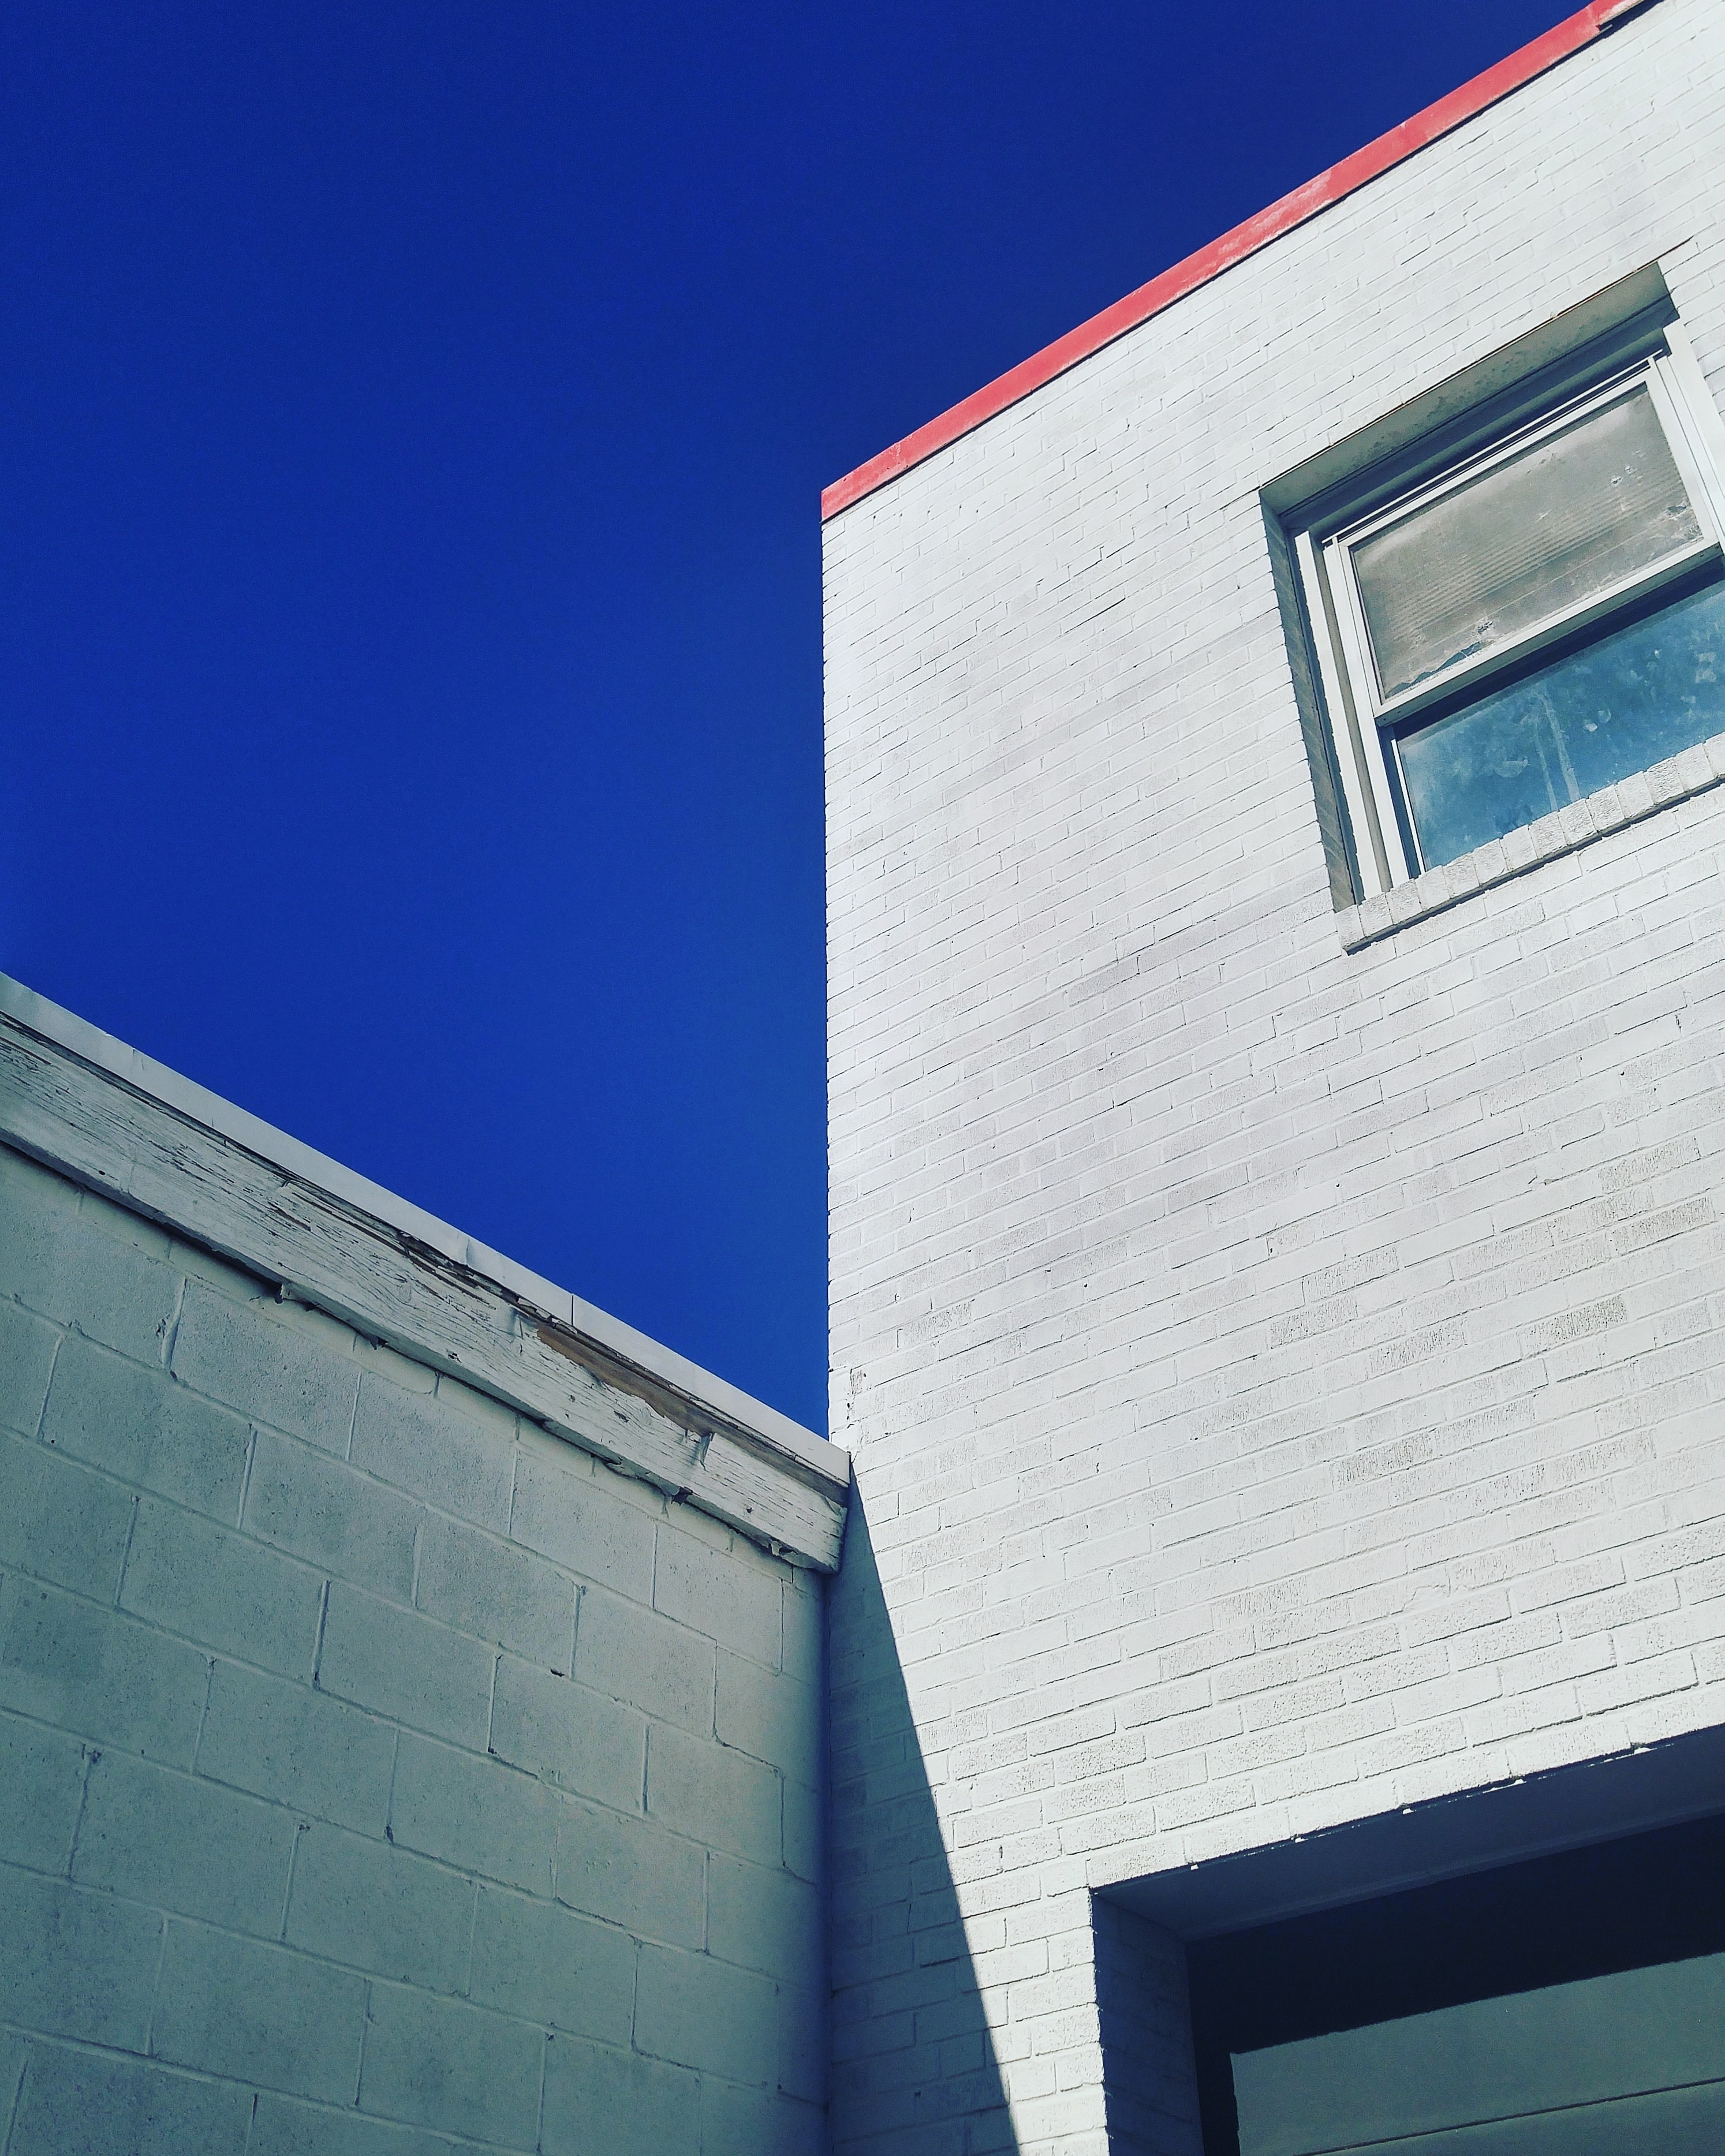 Concrete building exterior with red roof and a window with a dark blue sky